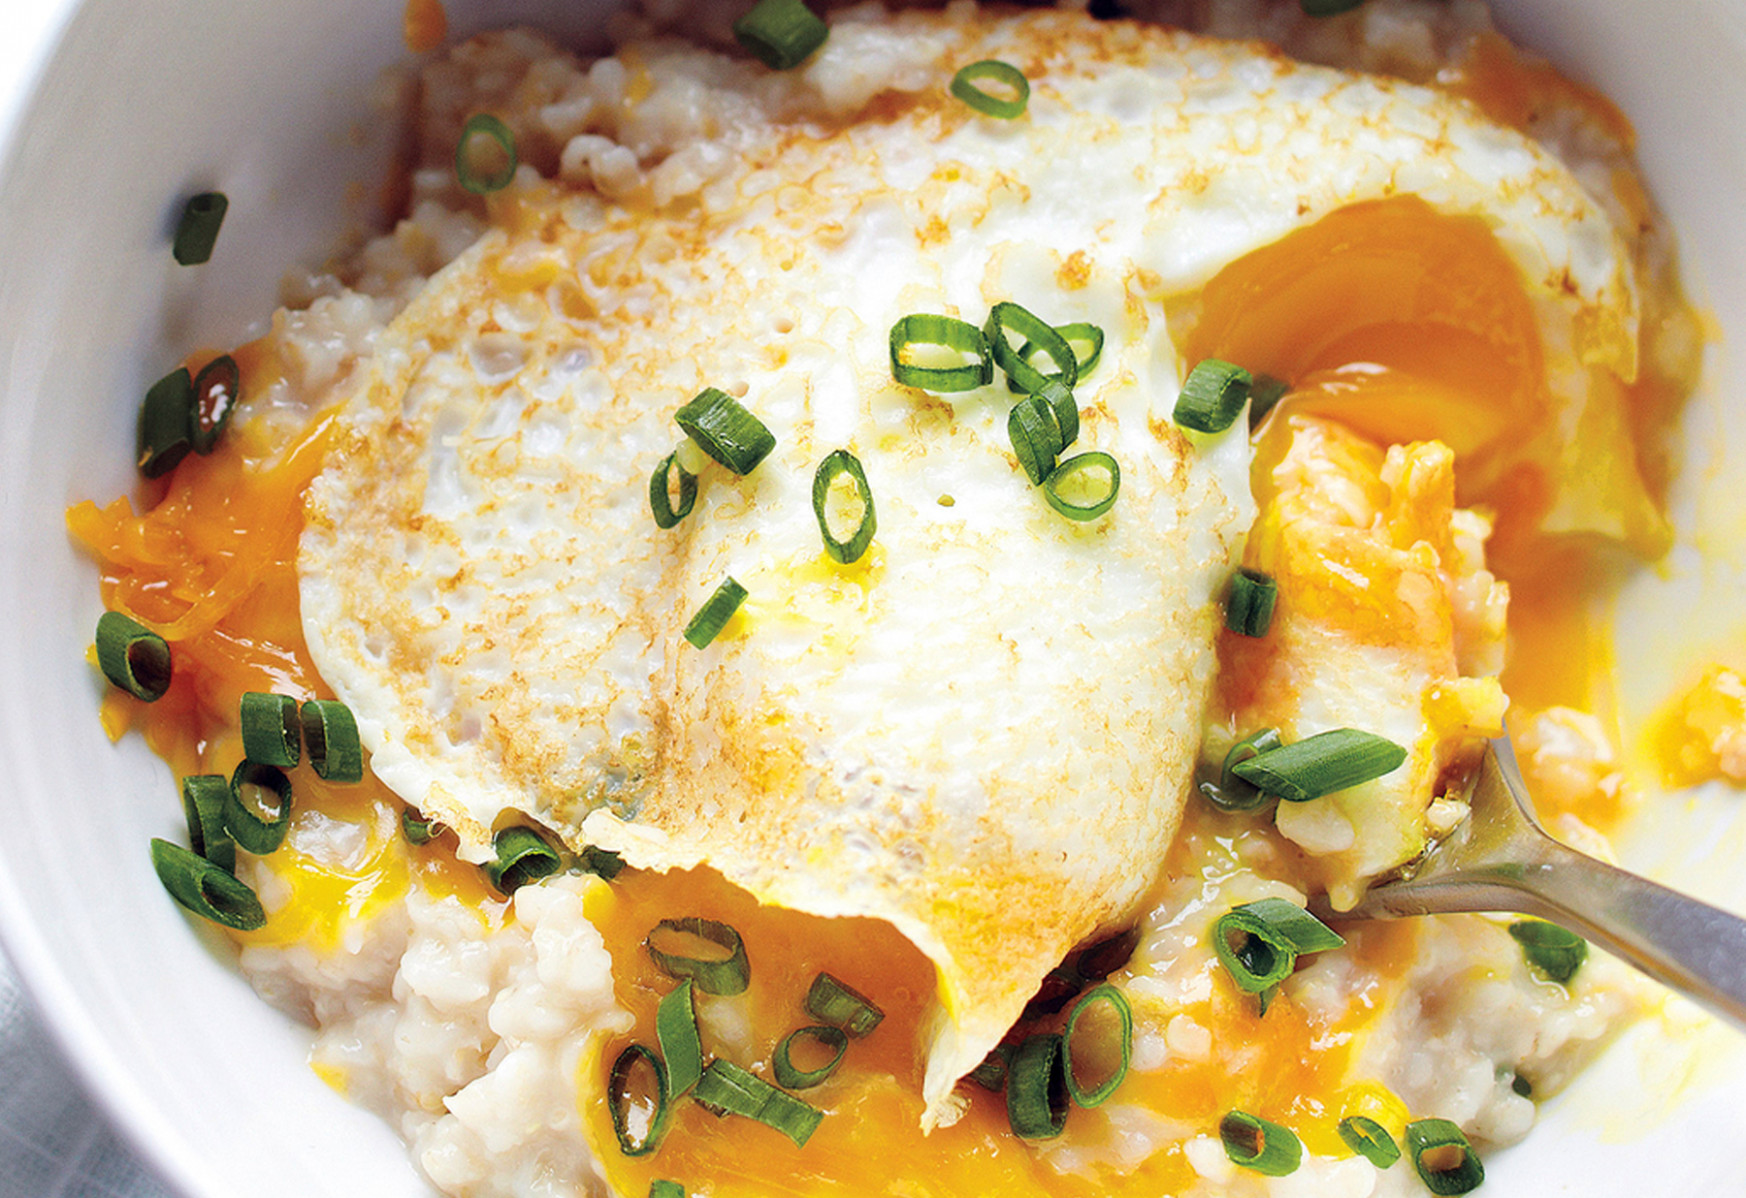 Healthy Breakfasts: 13 Fast Recipes For Busy Mornings - Recipes Eating Healthy